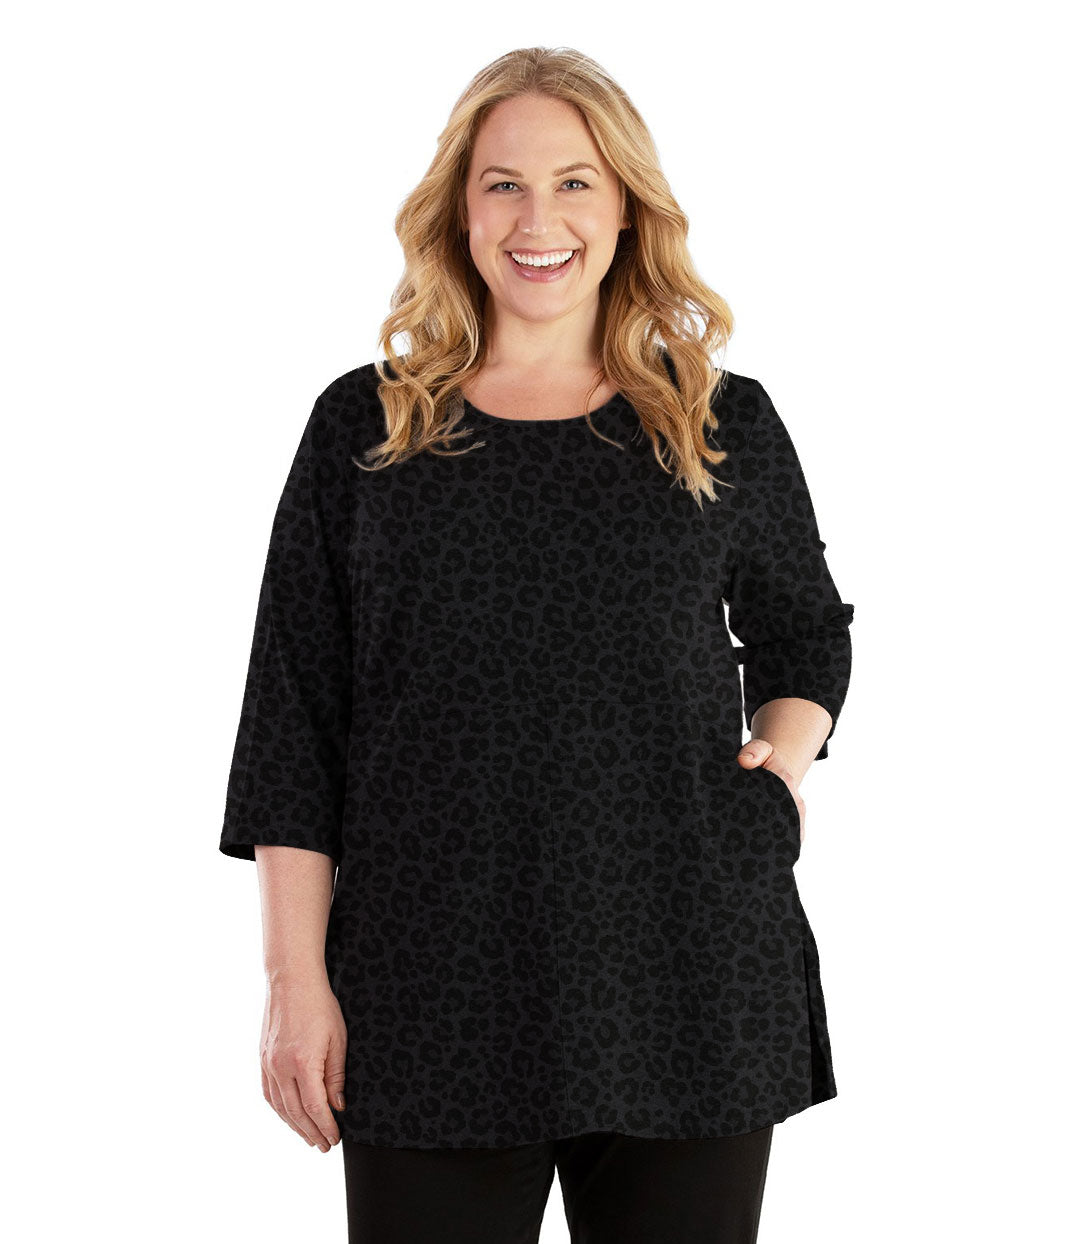 Stretch Naturals Empire Tunic with Pockets Deep Leopard Print-Tops 3/4 Sleeve Tunic-Hop Wo Trading Co Ltd-XL-Deep Leopard Print-JunoActive